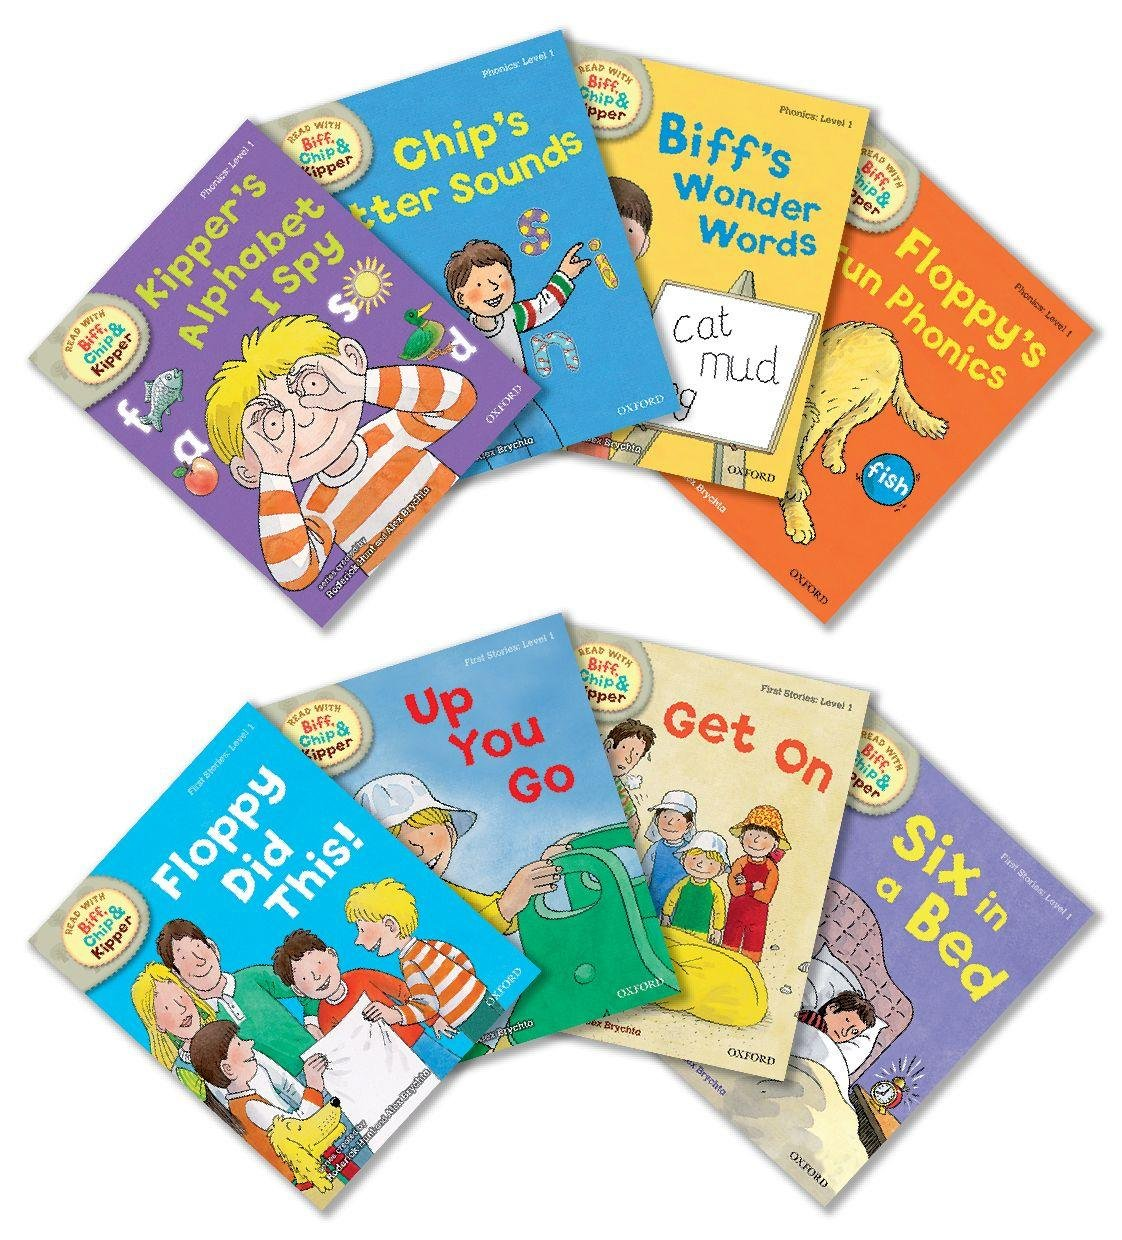 Oxford reading tree read with biff chip and kipper level 1 pack oxford reading tree read with biff chip and kipper level 1 pack of 8 roderick hunt mr alex brychta mr nick schon kate ruttle ms annemarie young fandeluxe Choice Image